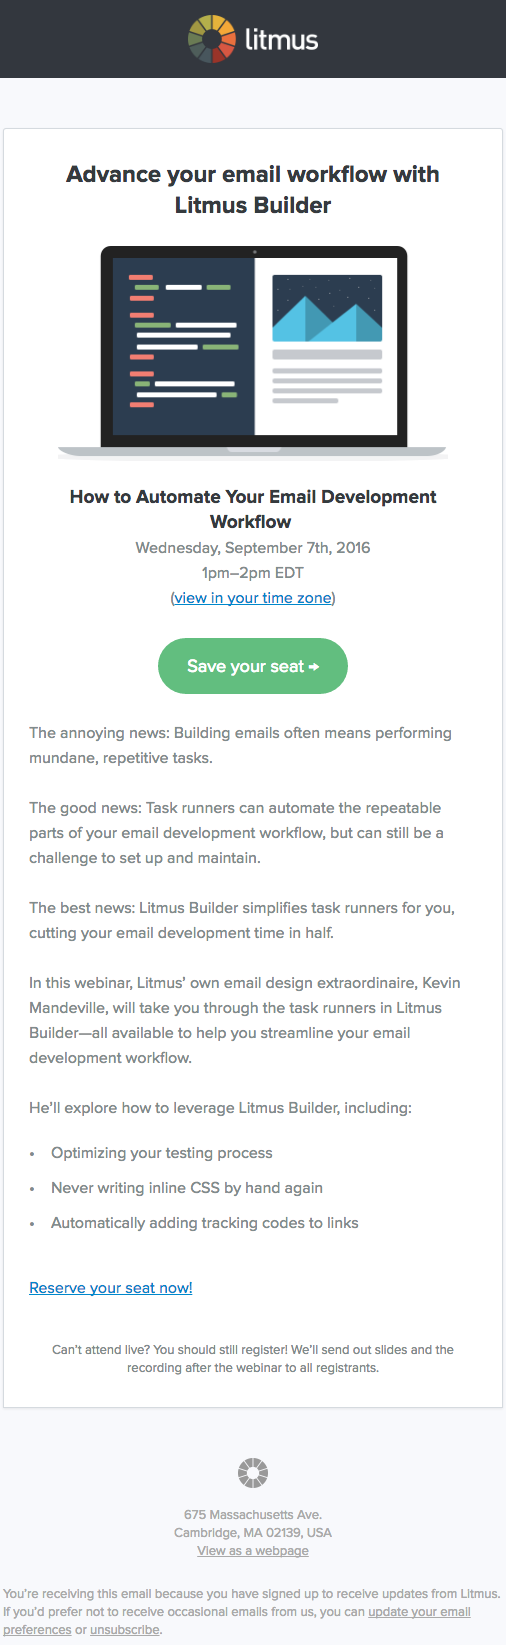 19 Lead Nurturing Email Examples You'll Want to Steal